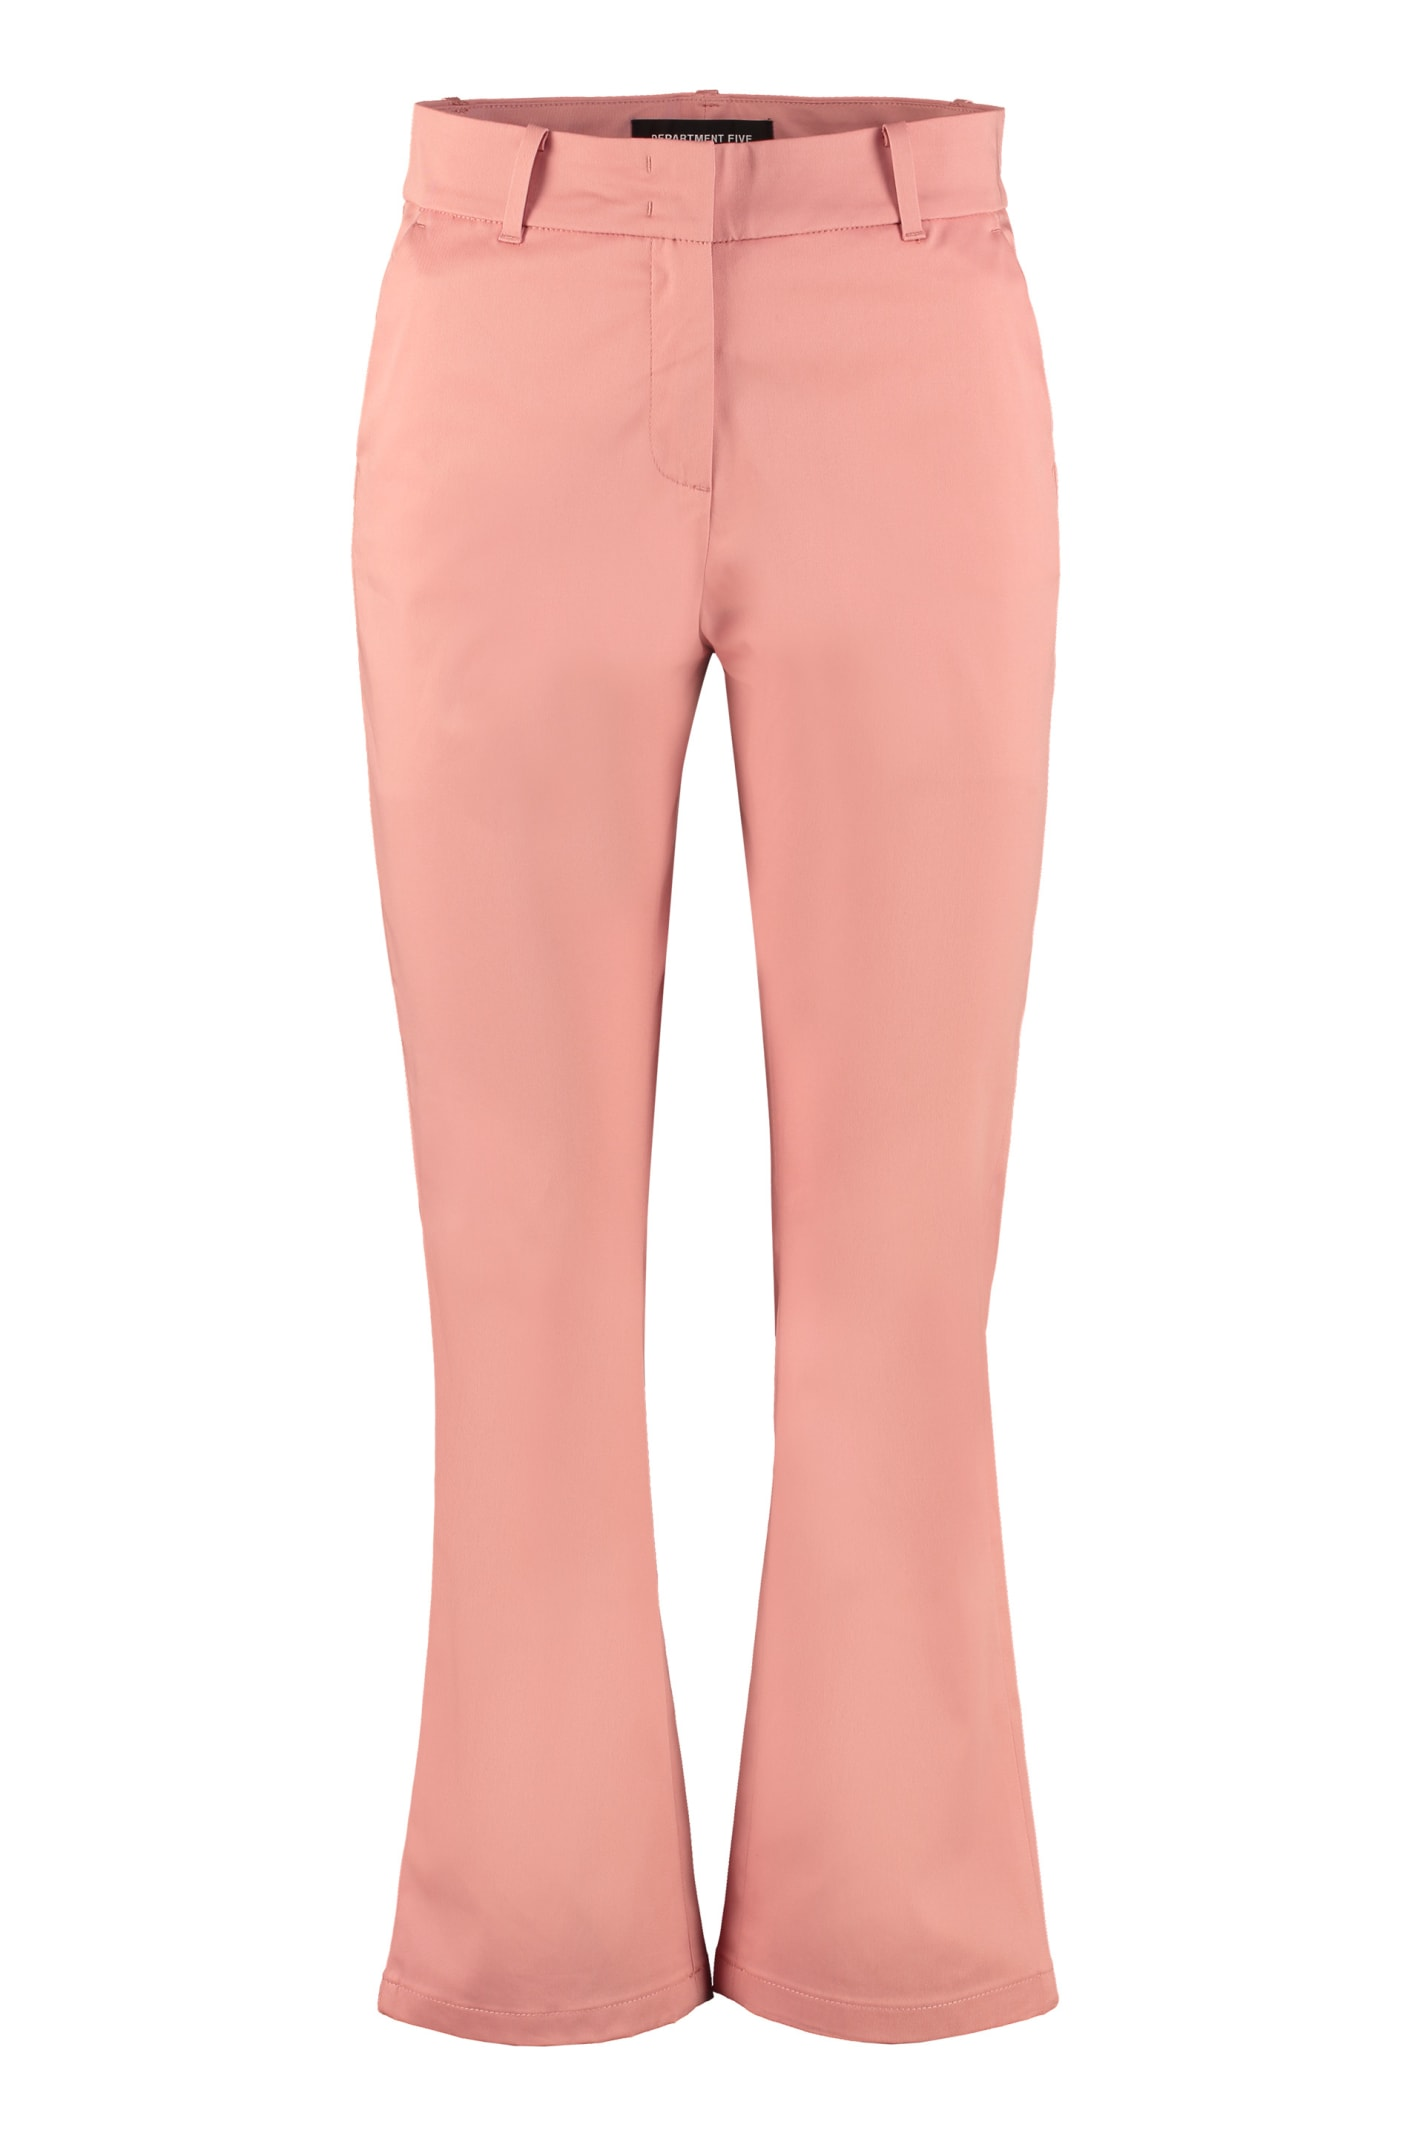 Jet Stretch Cotton Trousers